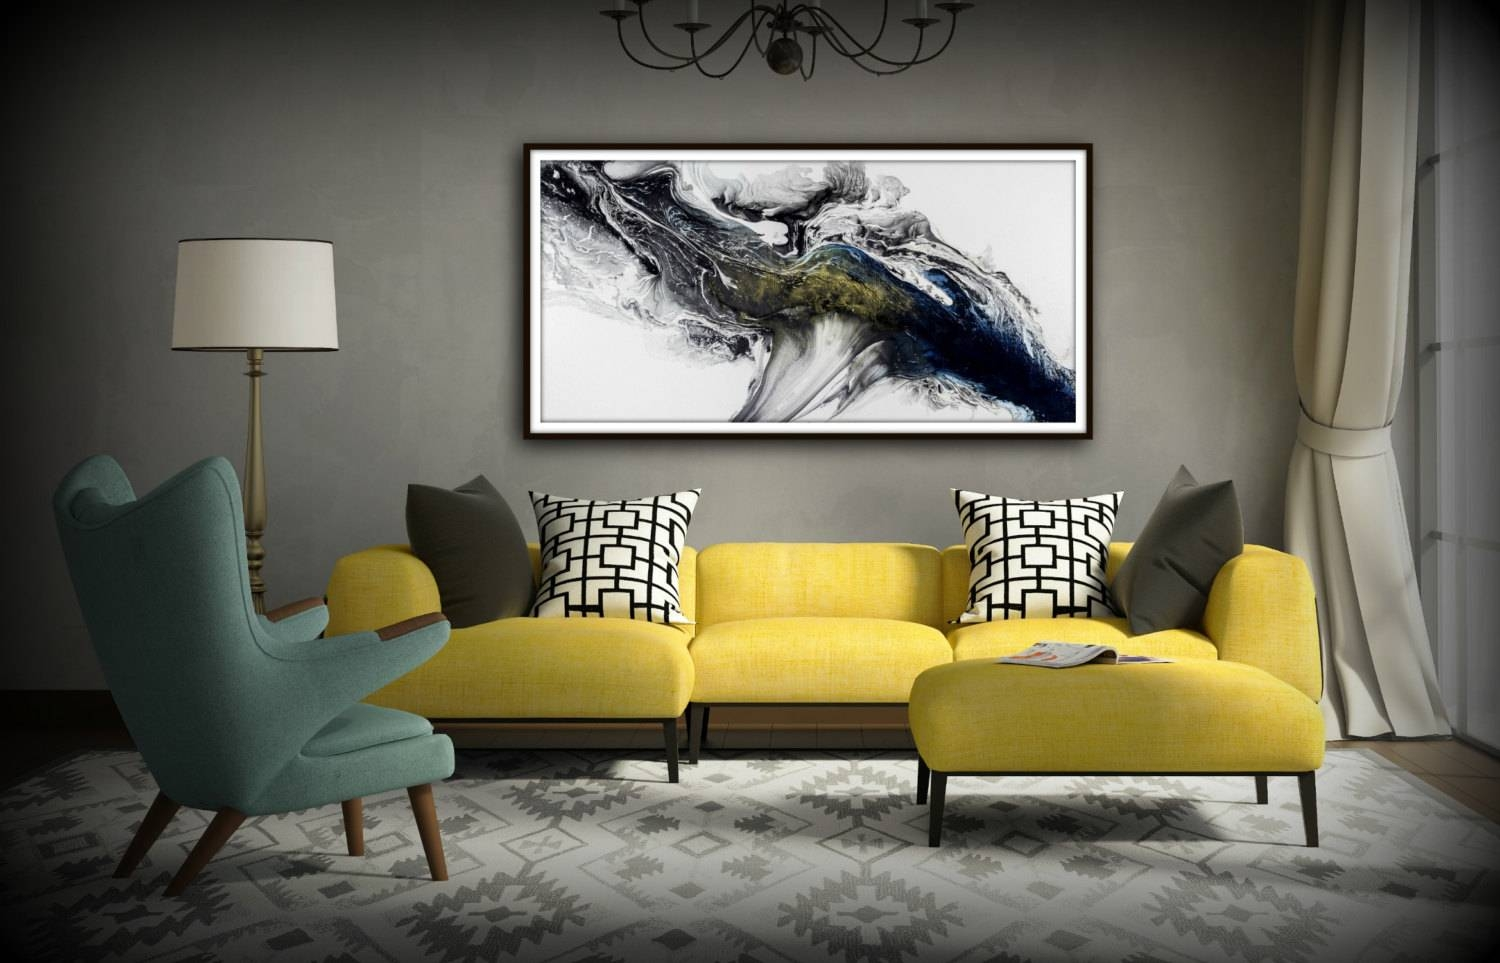 Black And White Wall Art Gift Abstract Painting Print Canvas Inside Most Popular Black And White Wall Art (View 8 of 16)